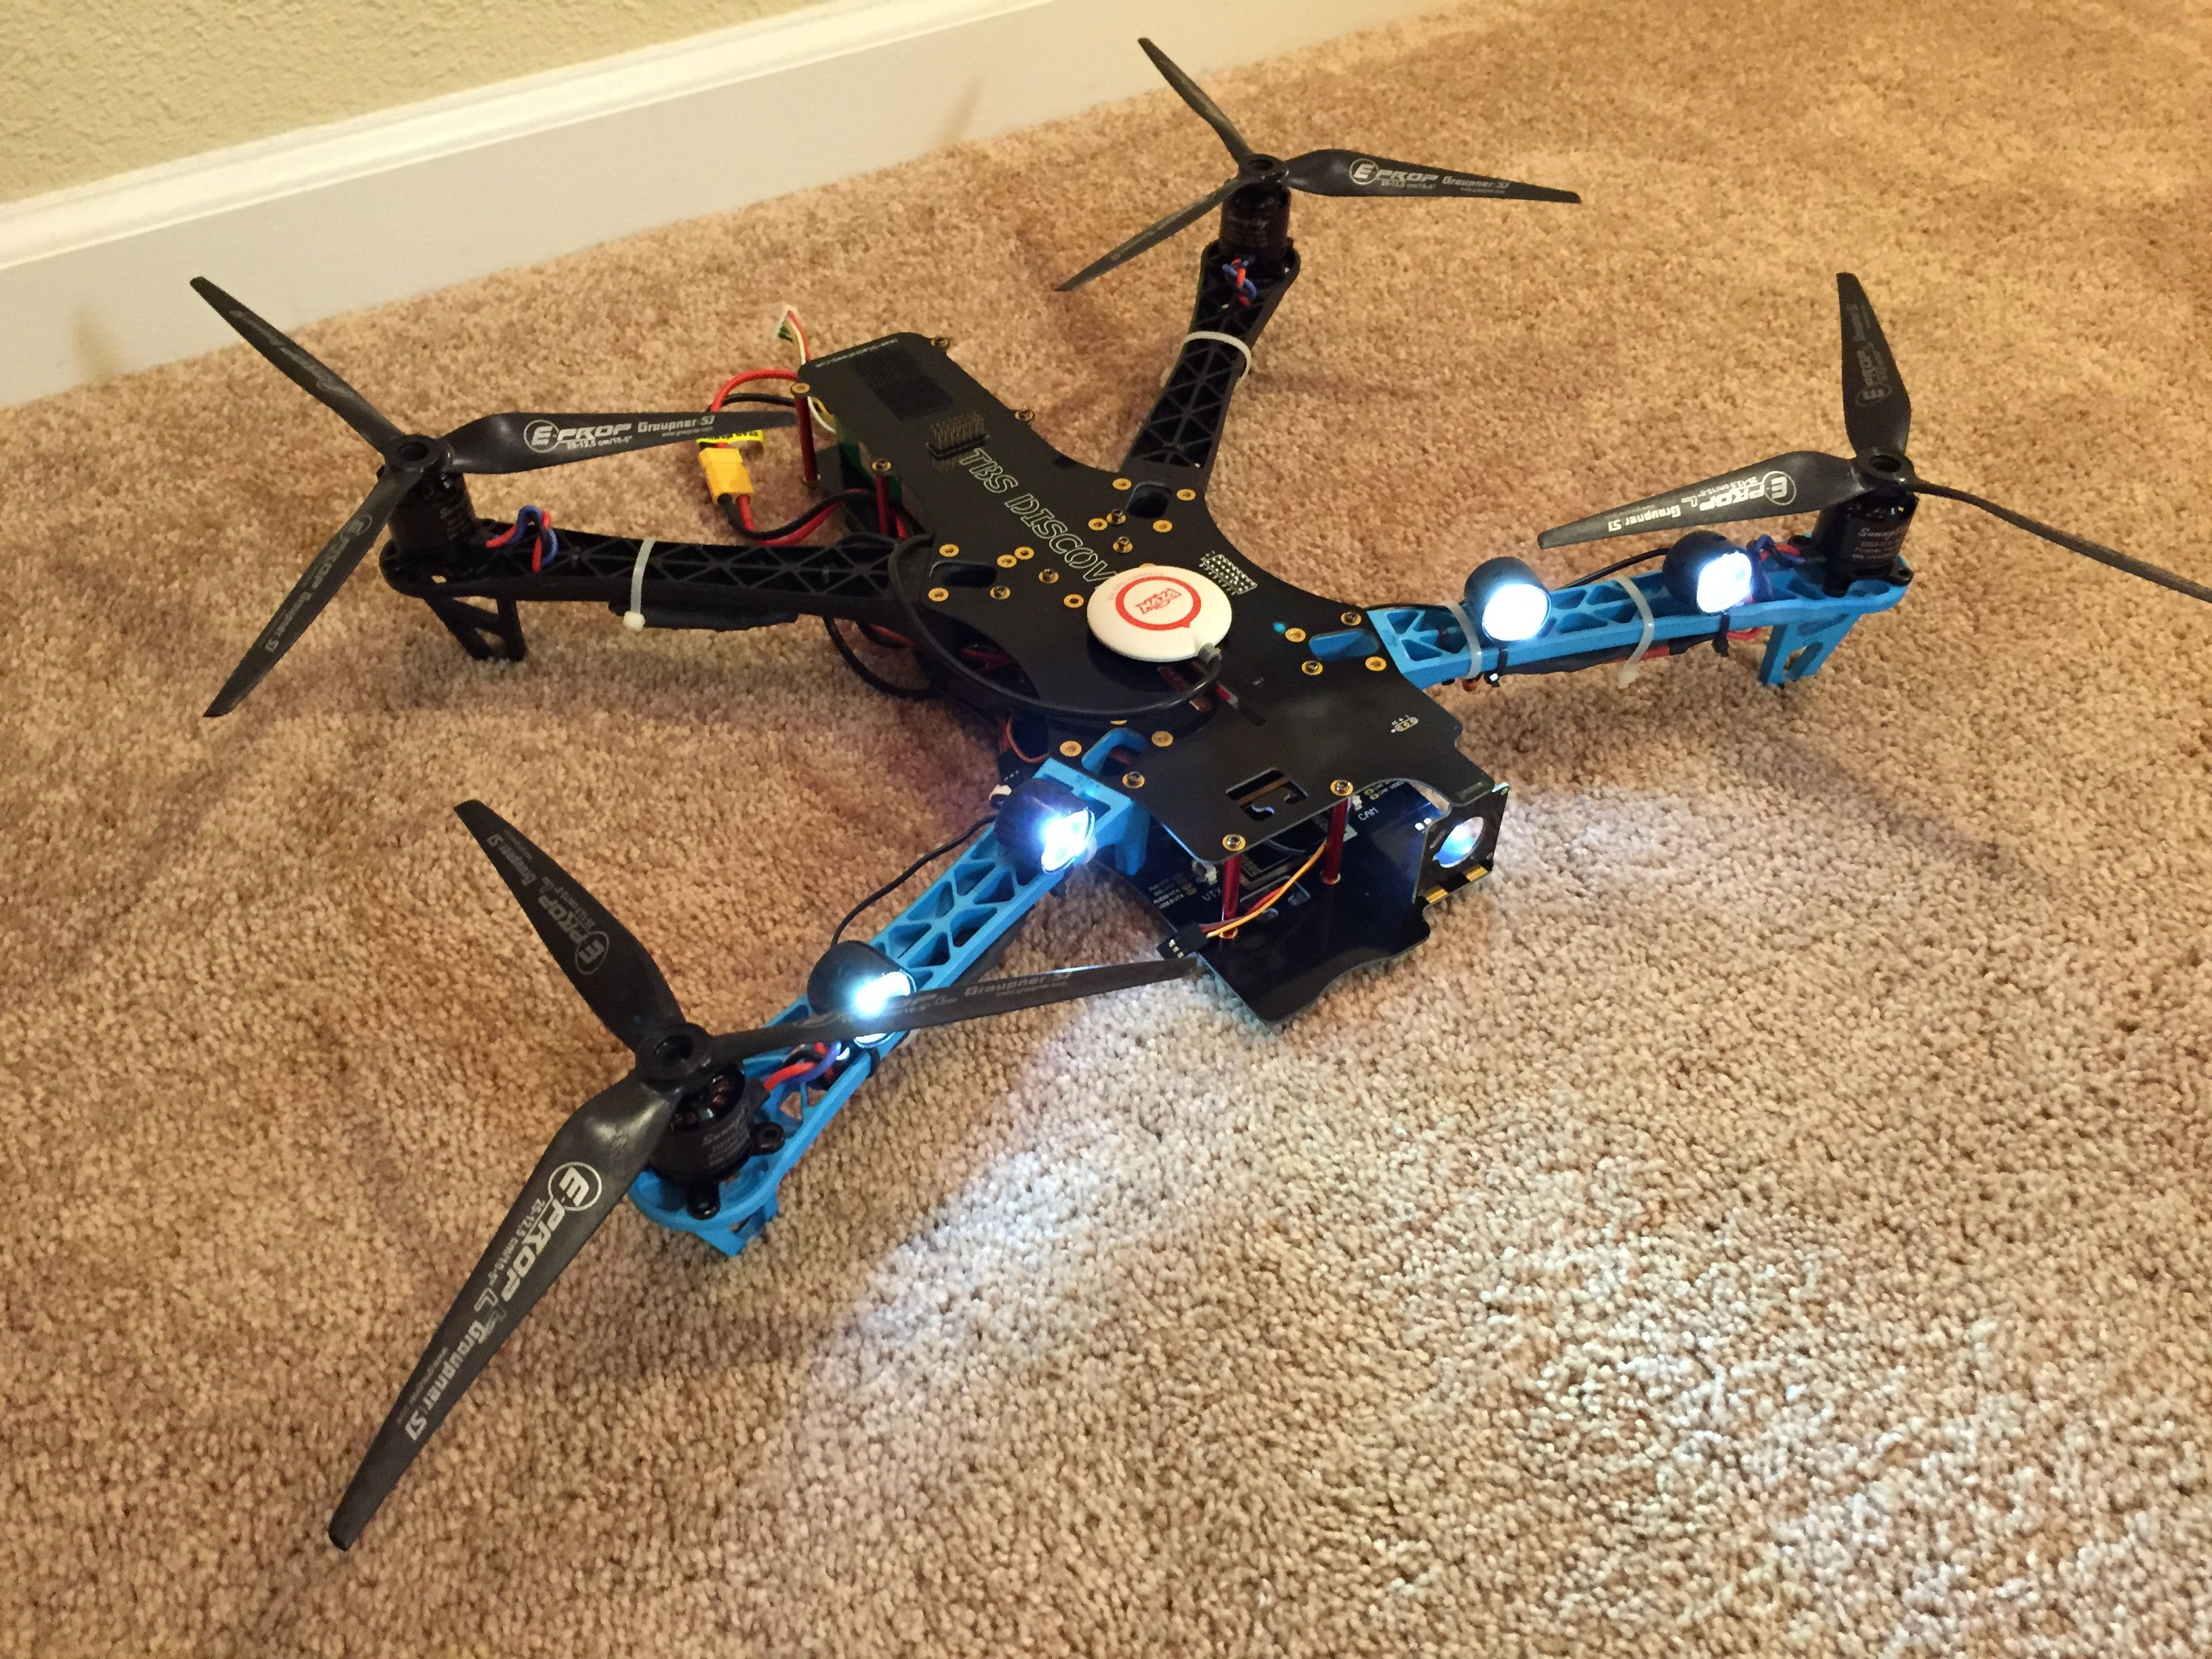 TBS discovery blue arms   Hobby Drone in 2019   Rc drone